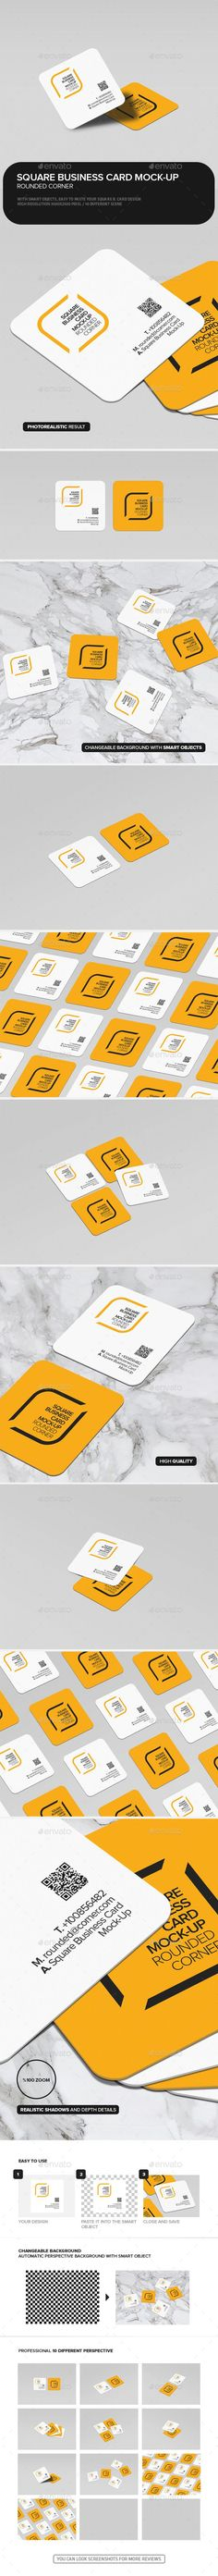 Square Business Card Mock-Up Rounded Corner. Download here: https://graphicriver.net/item/square-business-card-mockup-rounded-corner/17328775?ref=ksioks